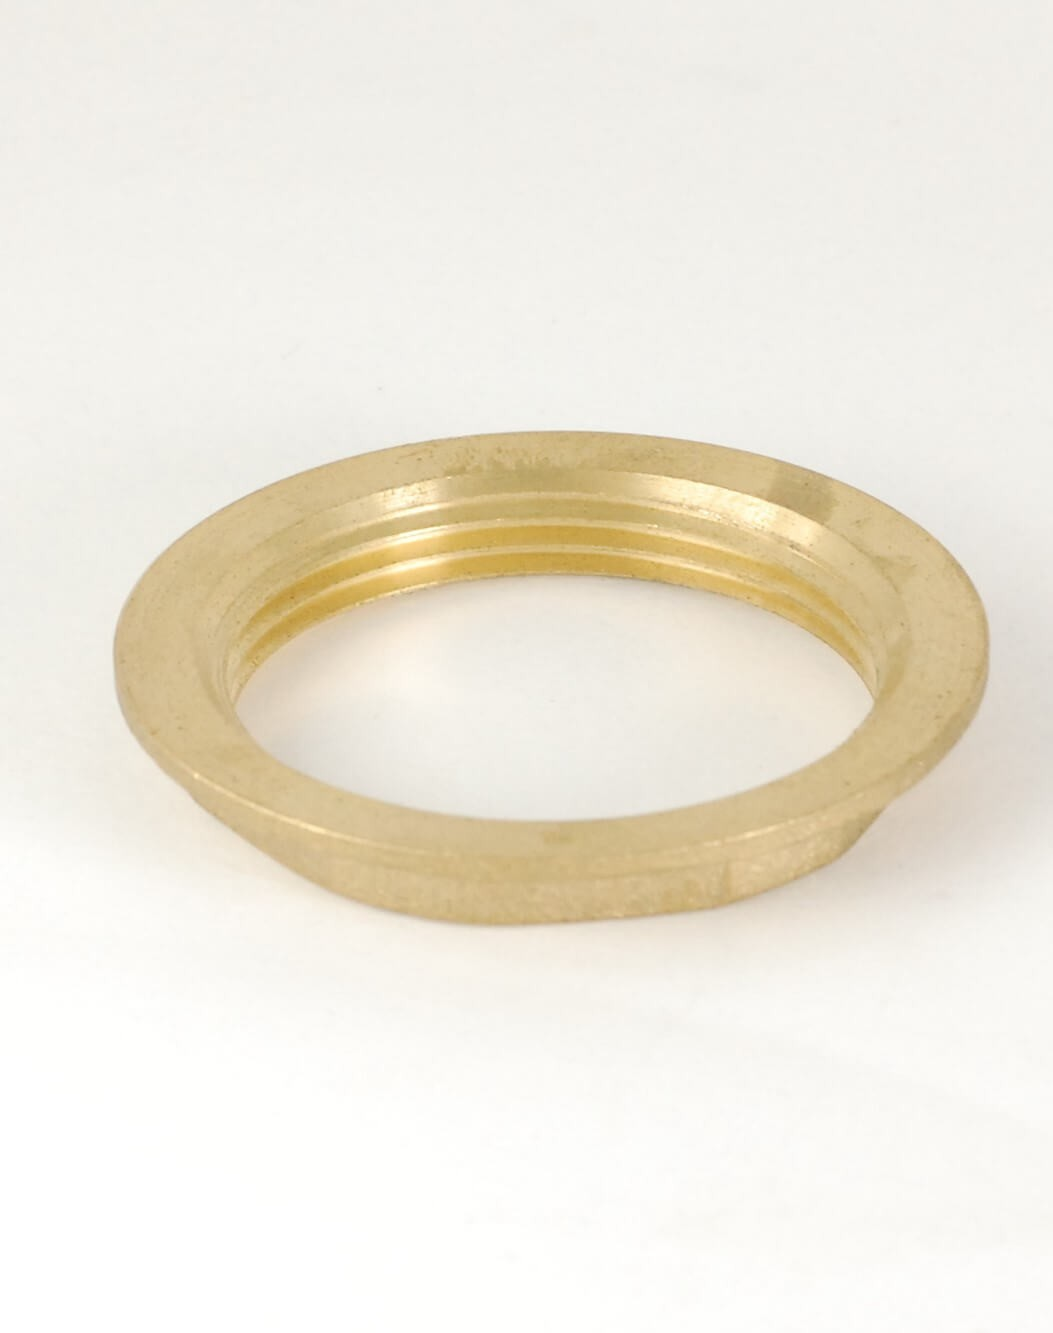 Brass Locknut for Strainer